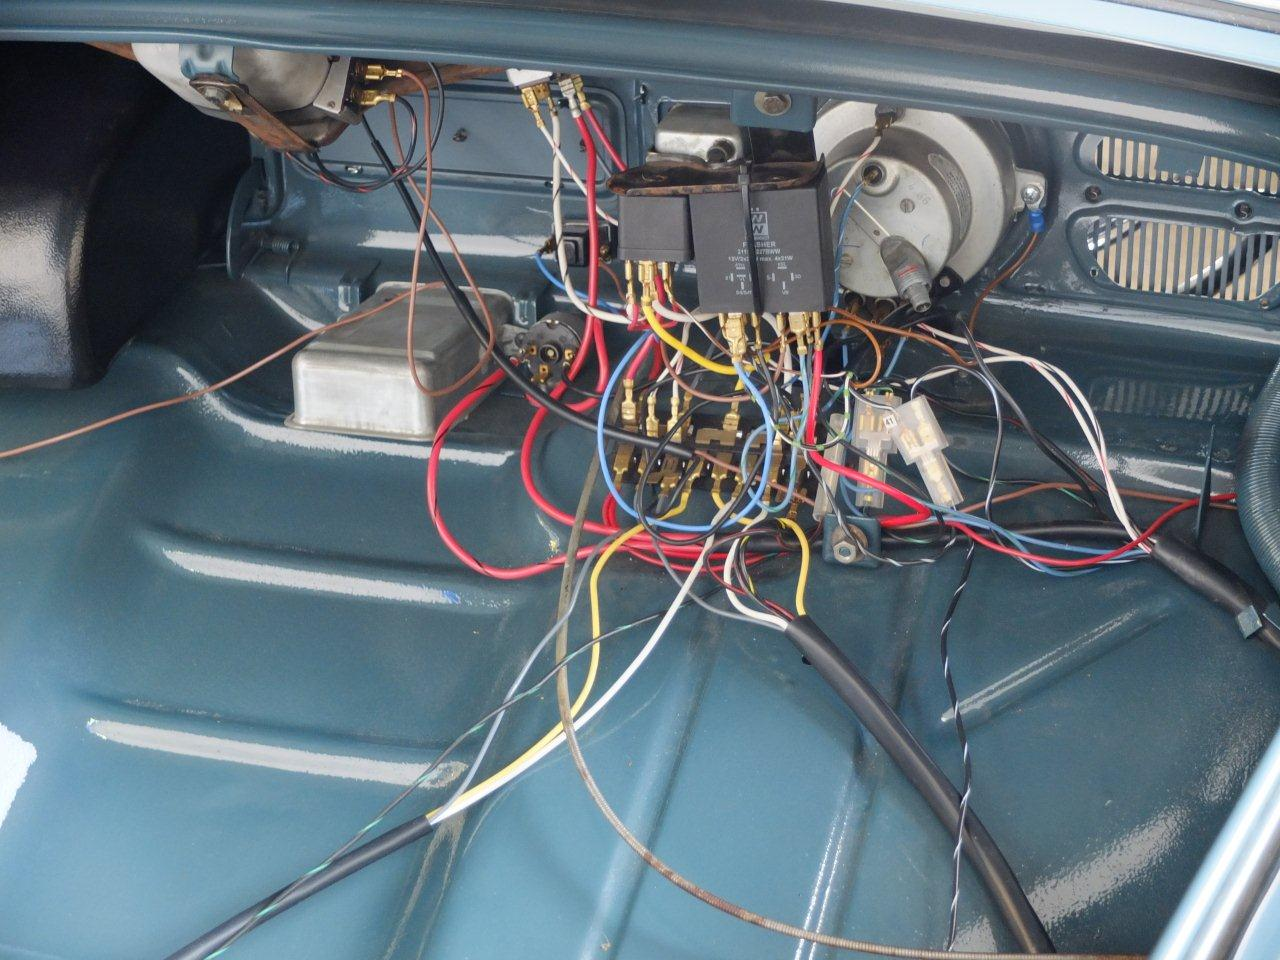 Esquema Tl further Monticarlo El Camino Chevelle Wiring additionally Bus Usa furthermore  additionally Bug. on 1968 vw beetle wiring diagram